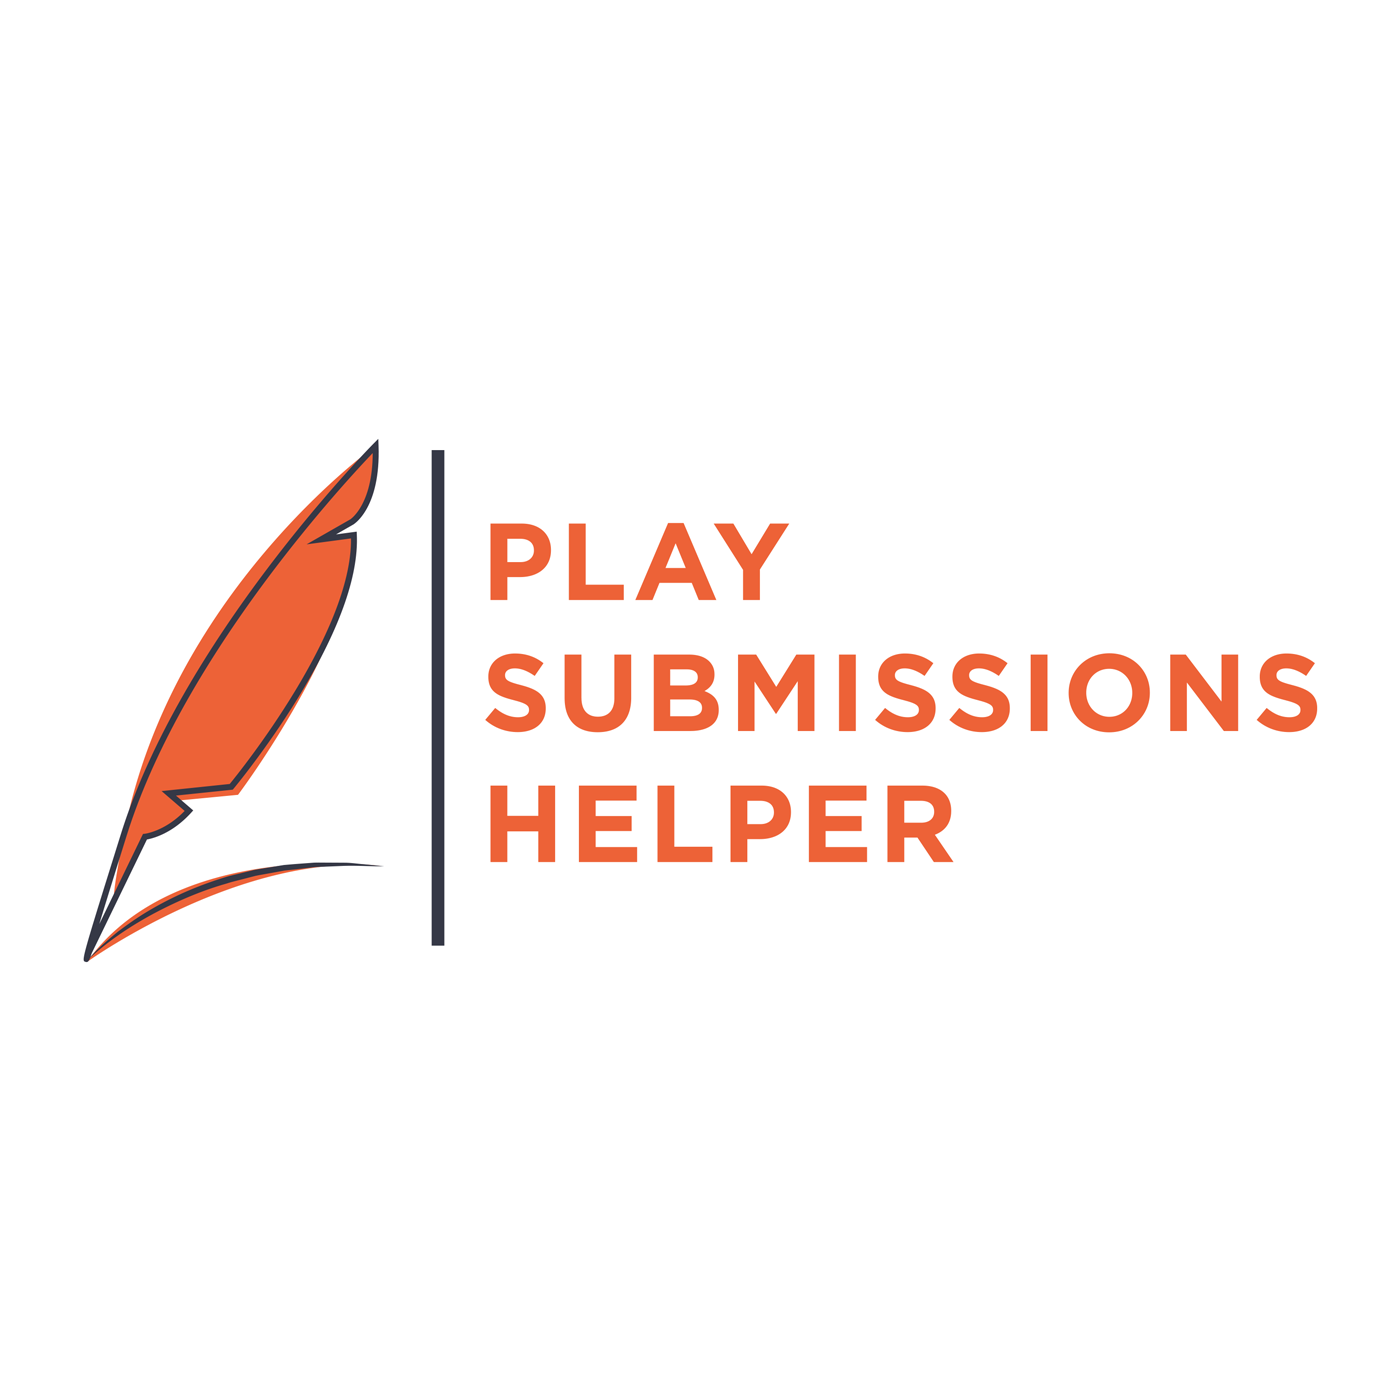 Play Submissions Helper | Insane compendium of 400+ play submissions